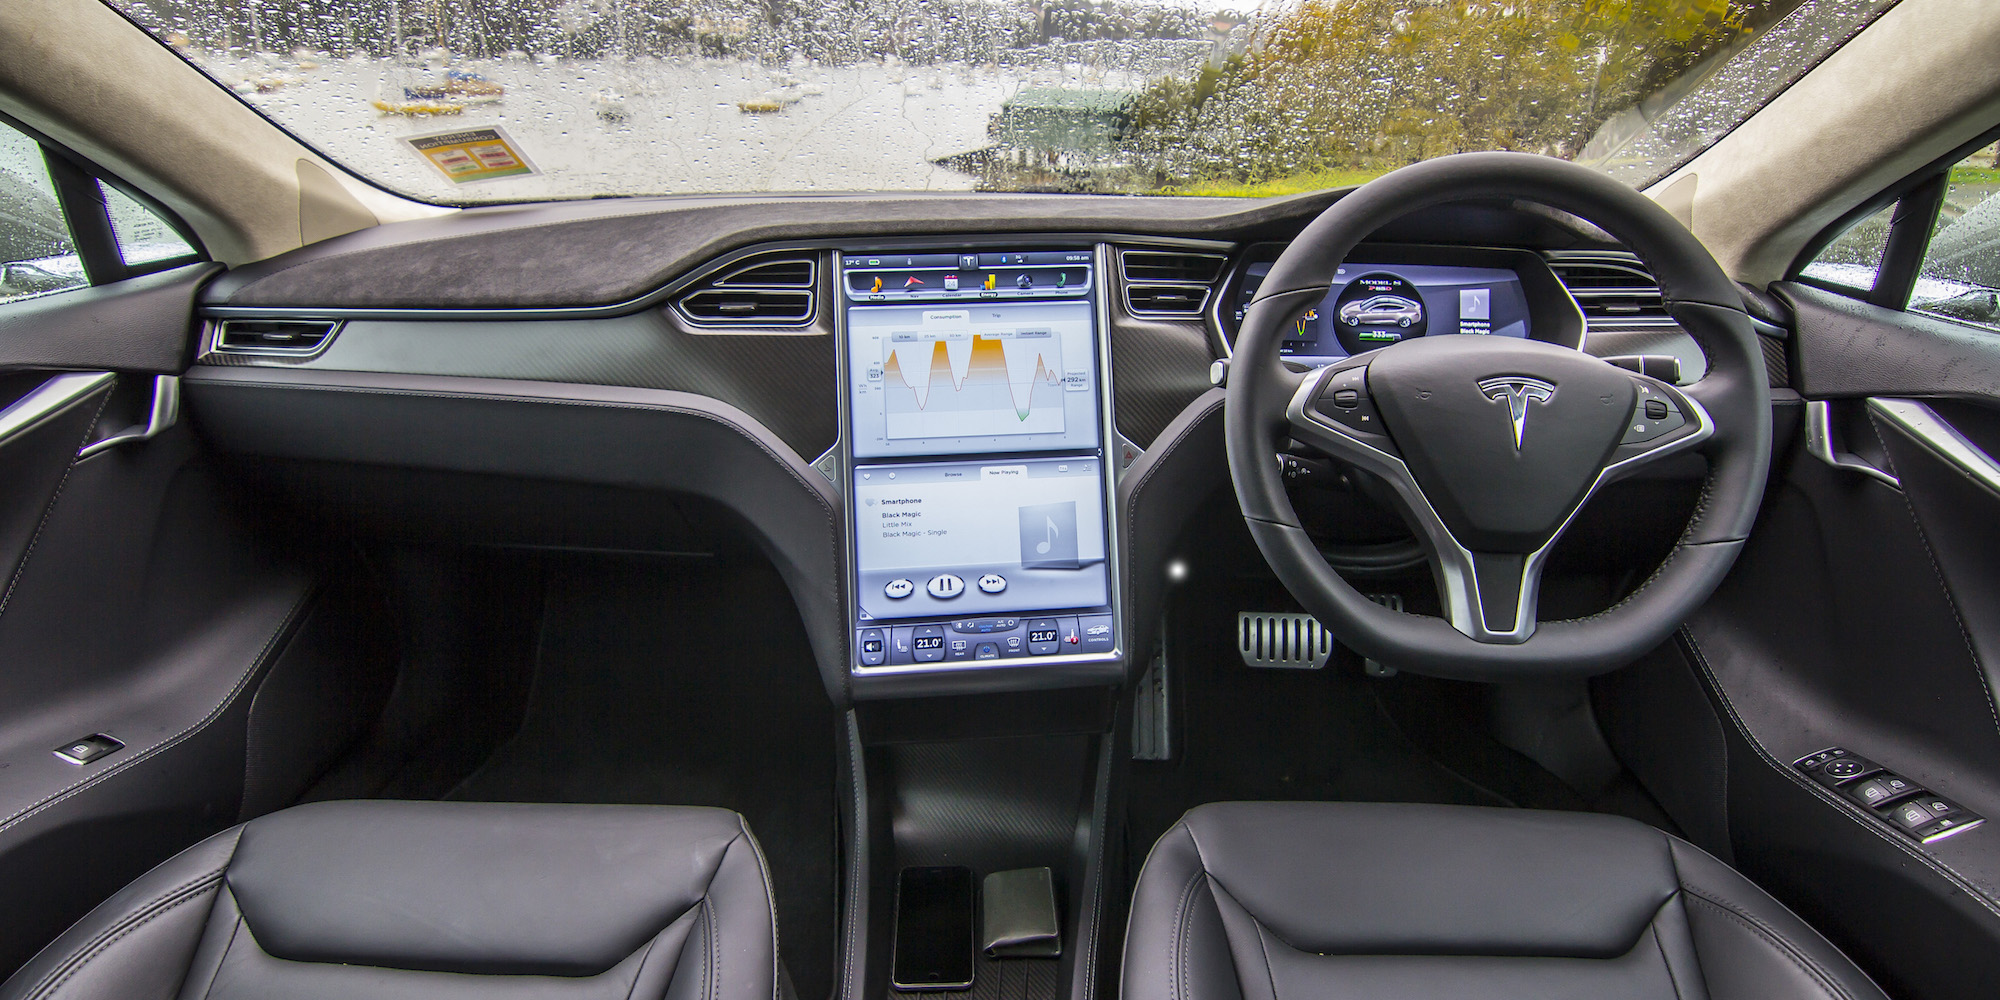 2015 Tesla Model S P85d Dashboard And Head Unit Interior (View 21 of 37)